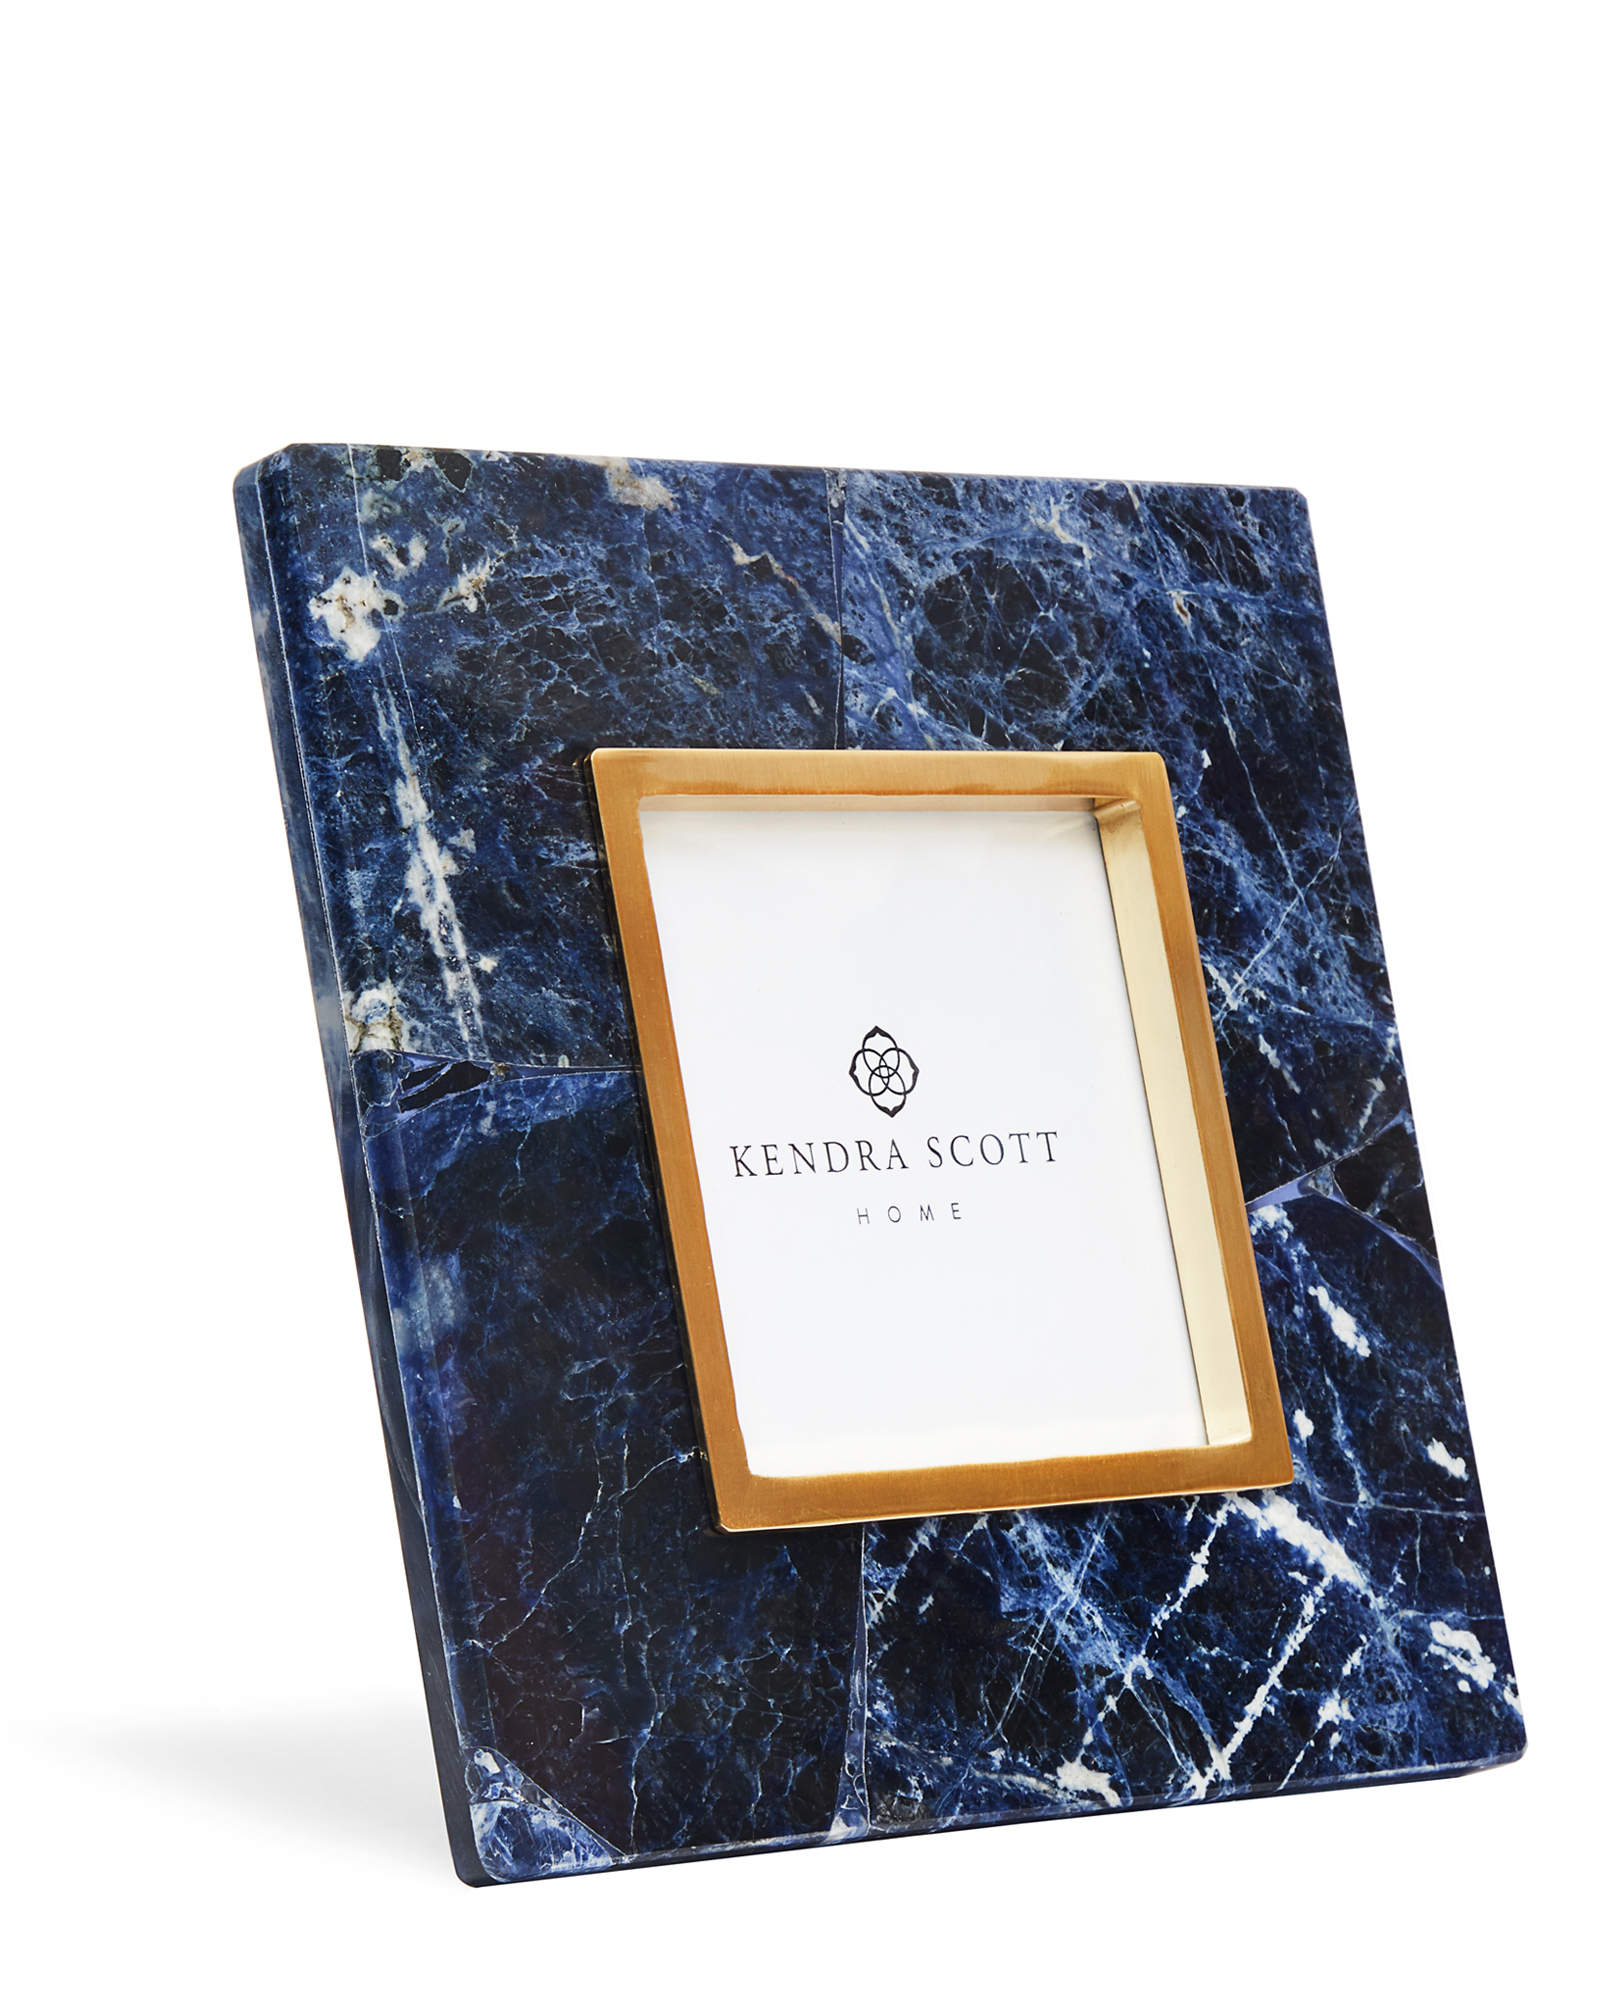 4x4 Photo Frame in Blue Sodalite